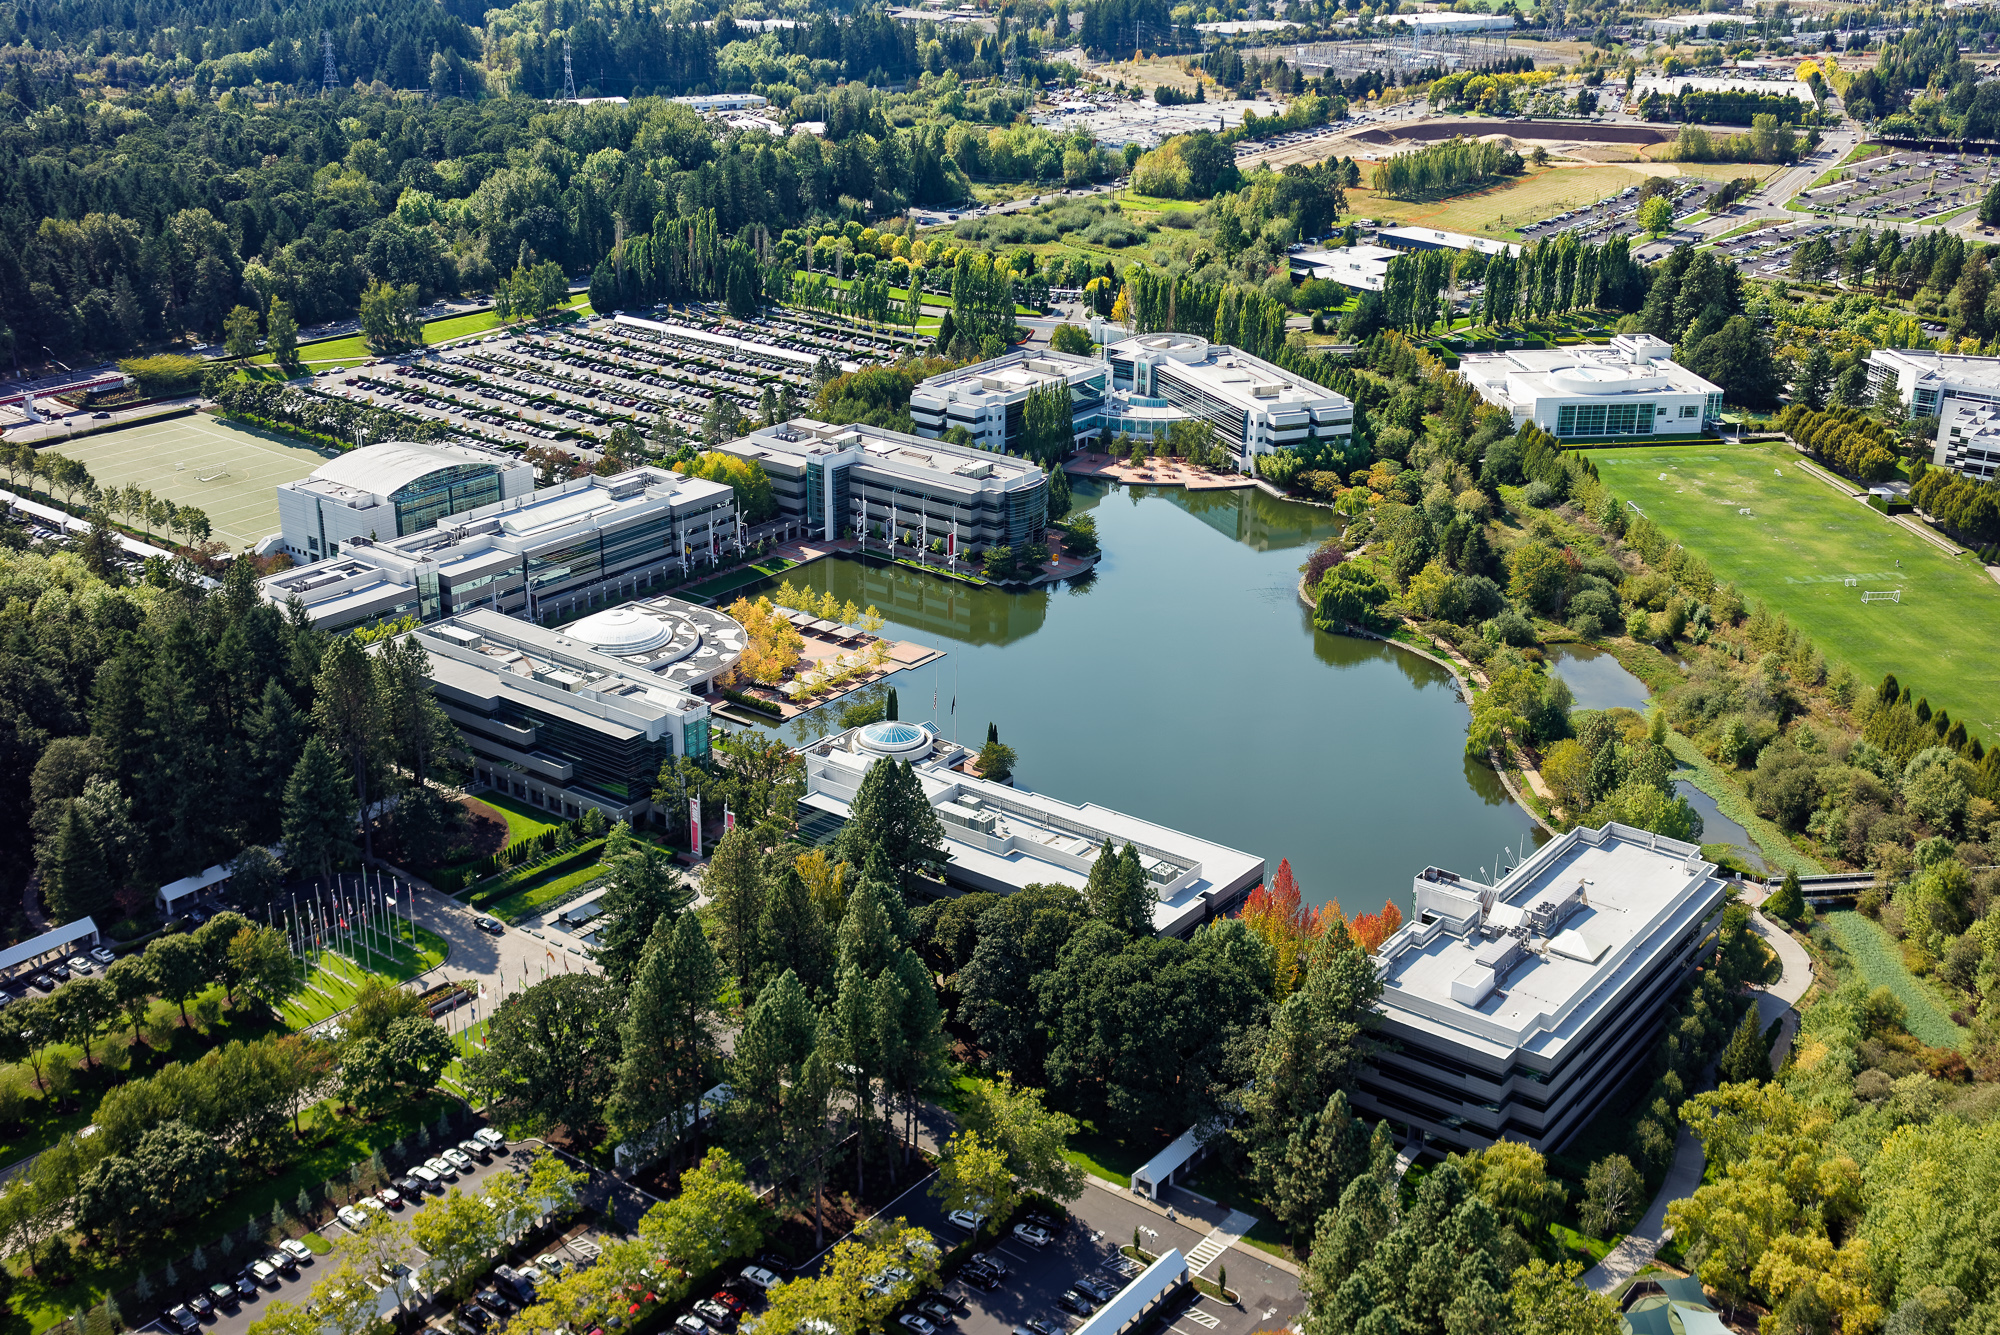 Aerial View of Nike Campus